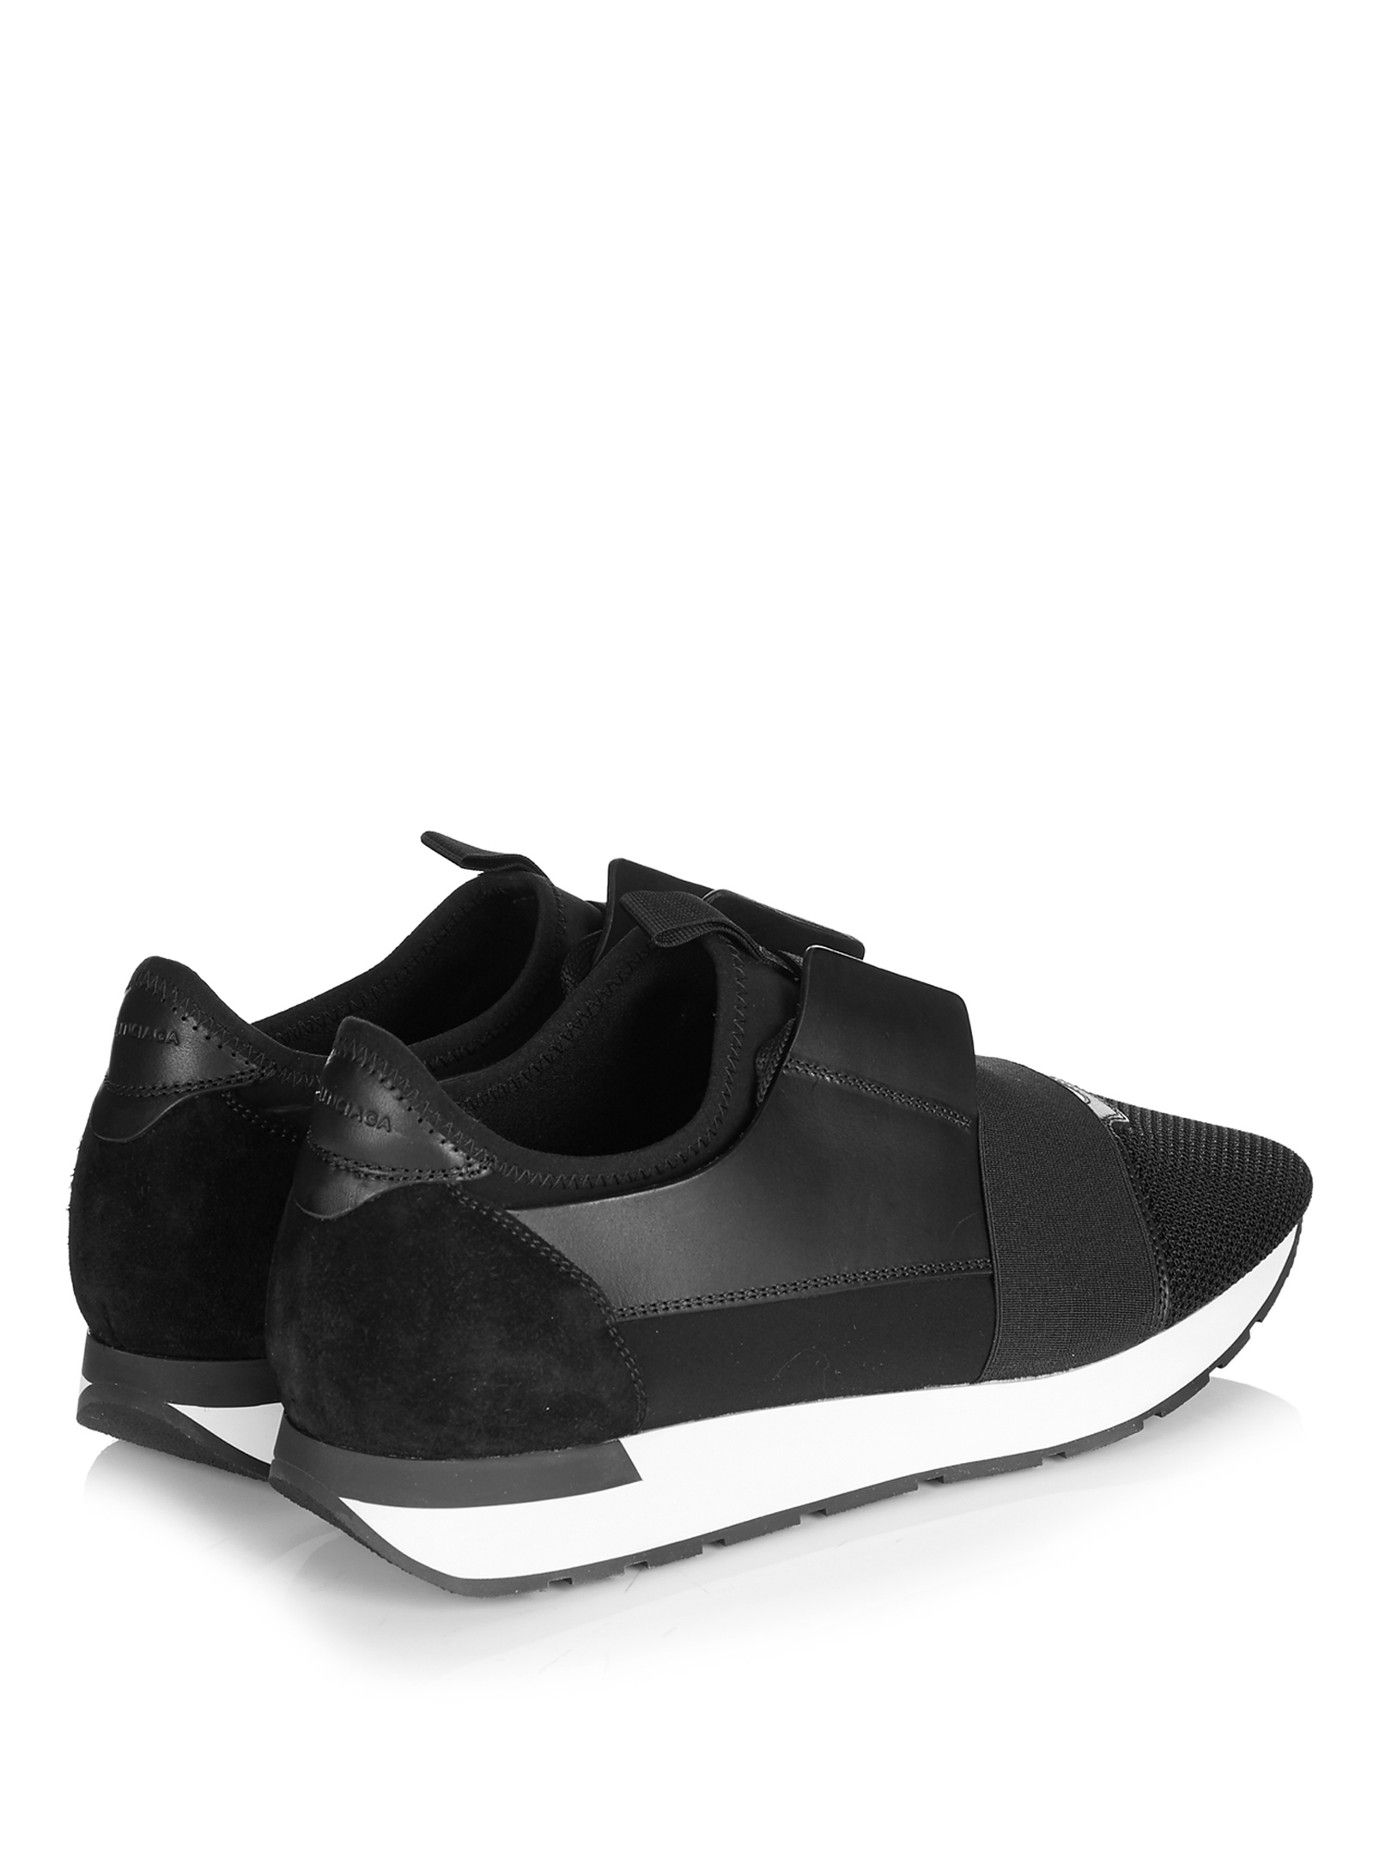 Race Runner low-top multi-panel trainers | Balenciaga | MATCHESFASHION.COM  UK